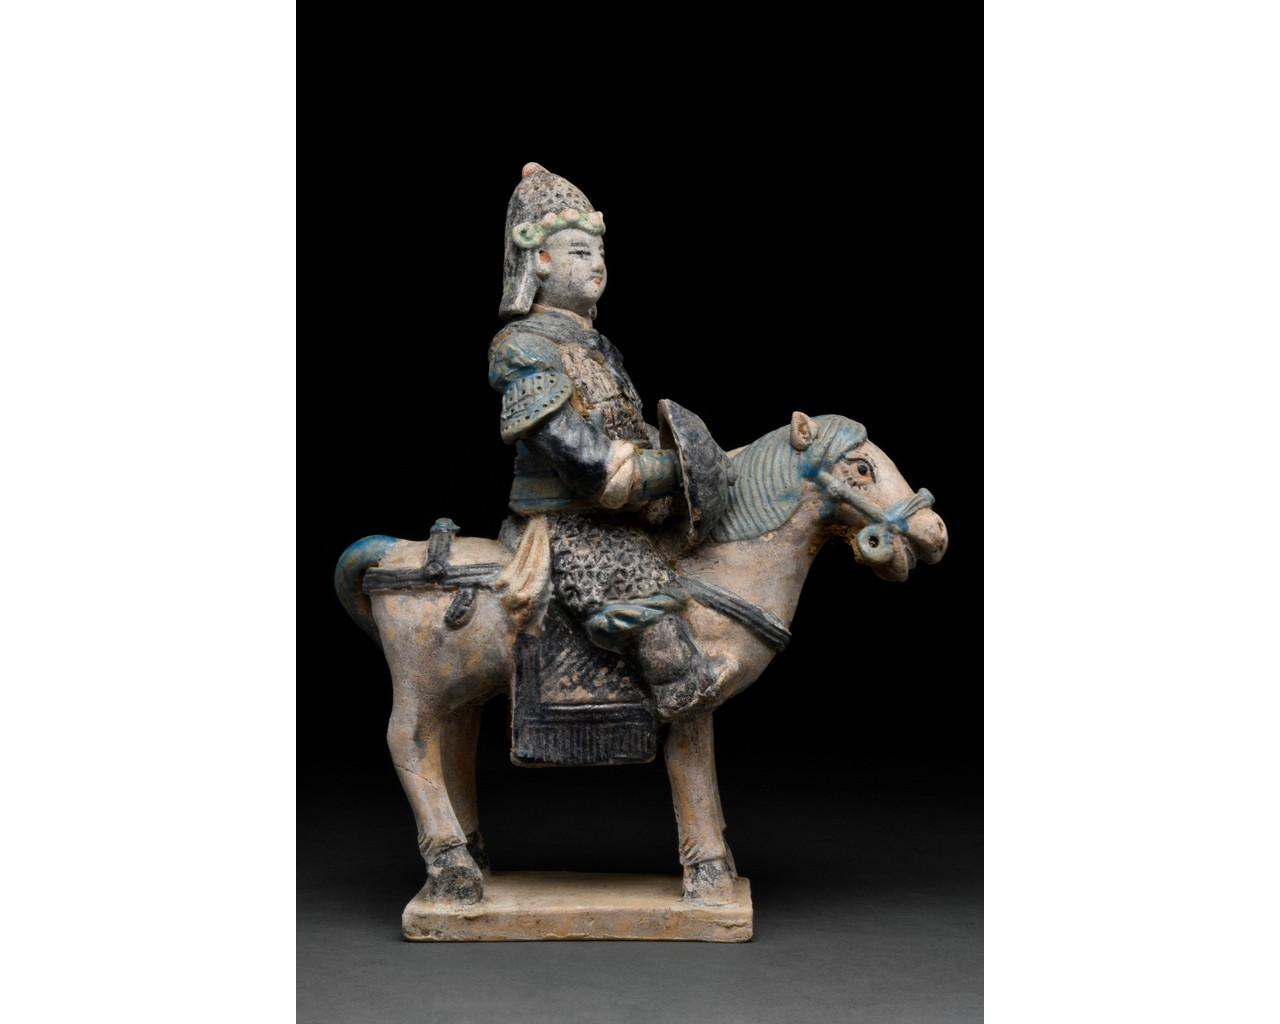 CHINESE MING DYNASTY HORSE AND RIDER FIGURE - Image 2 of 5